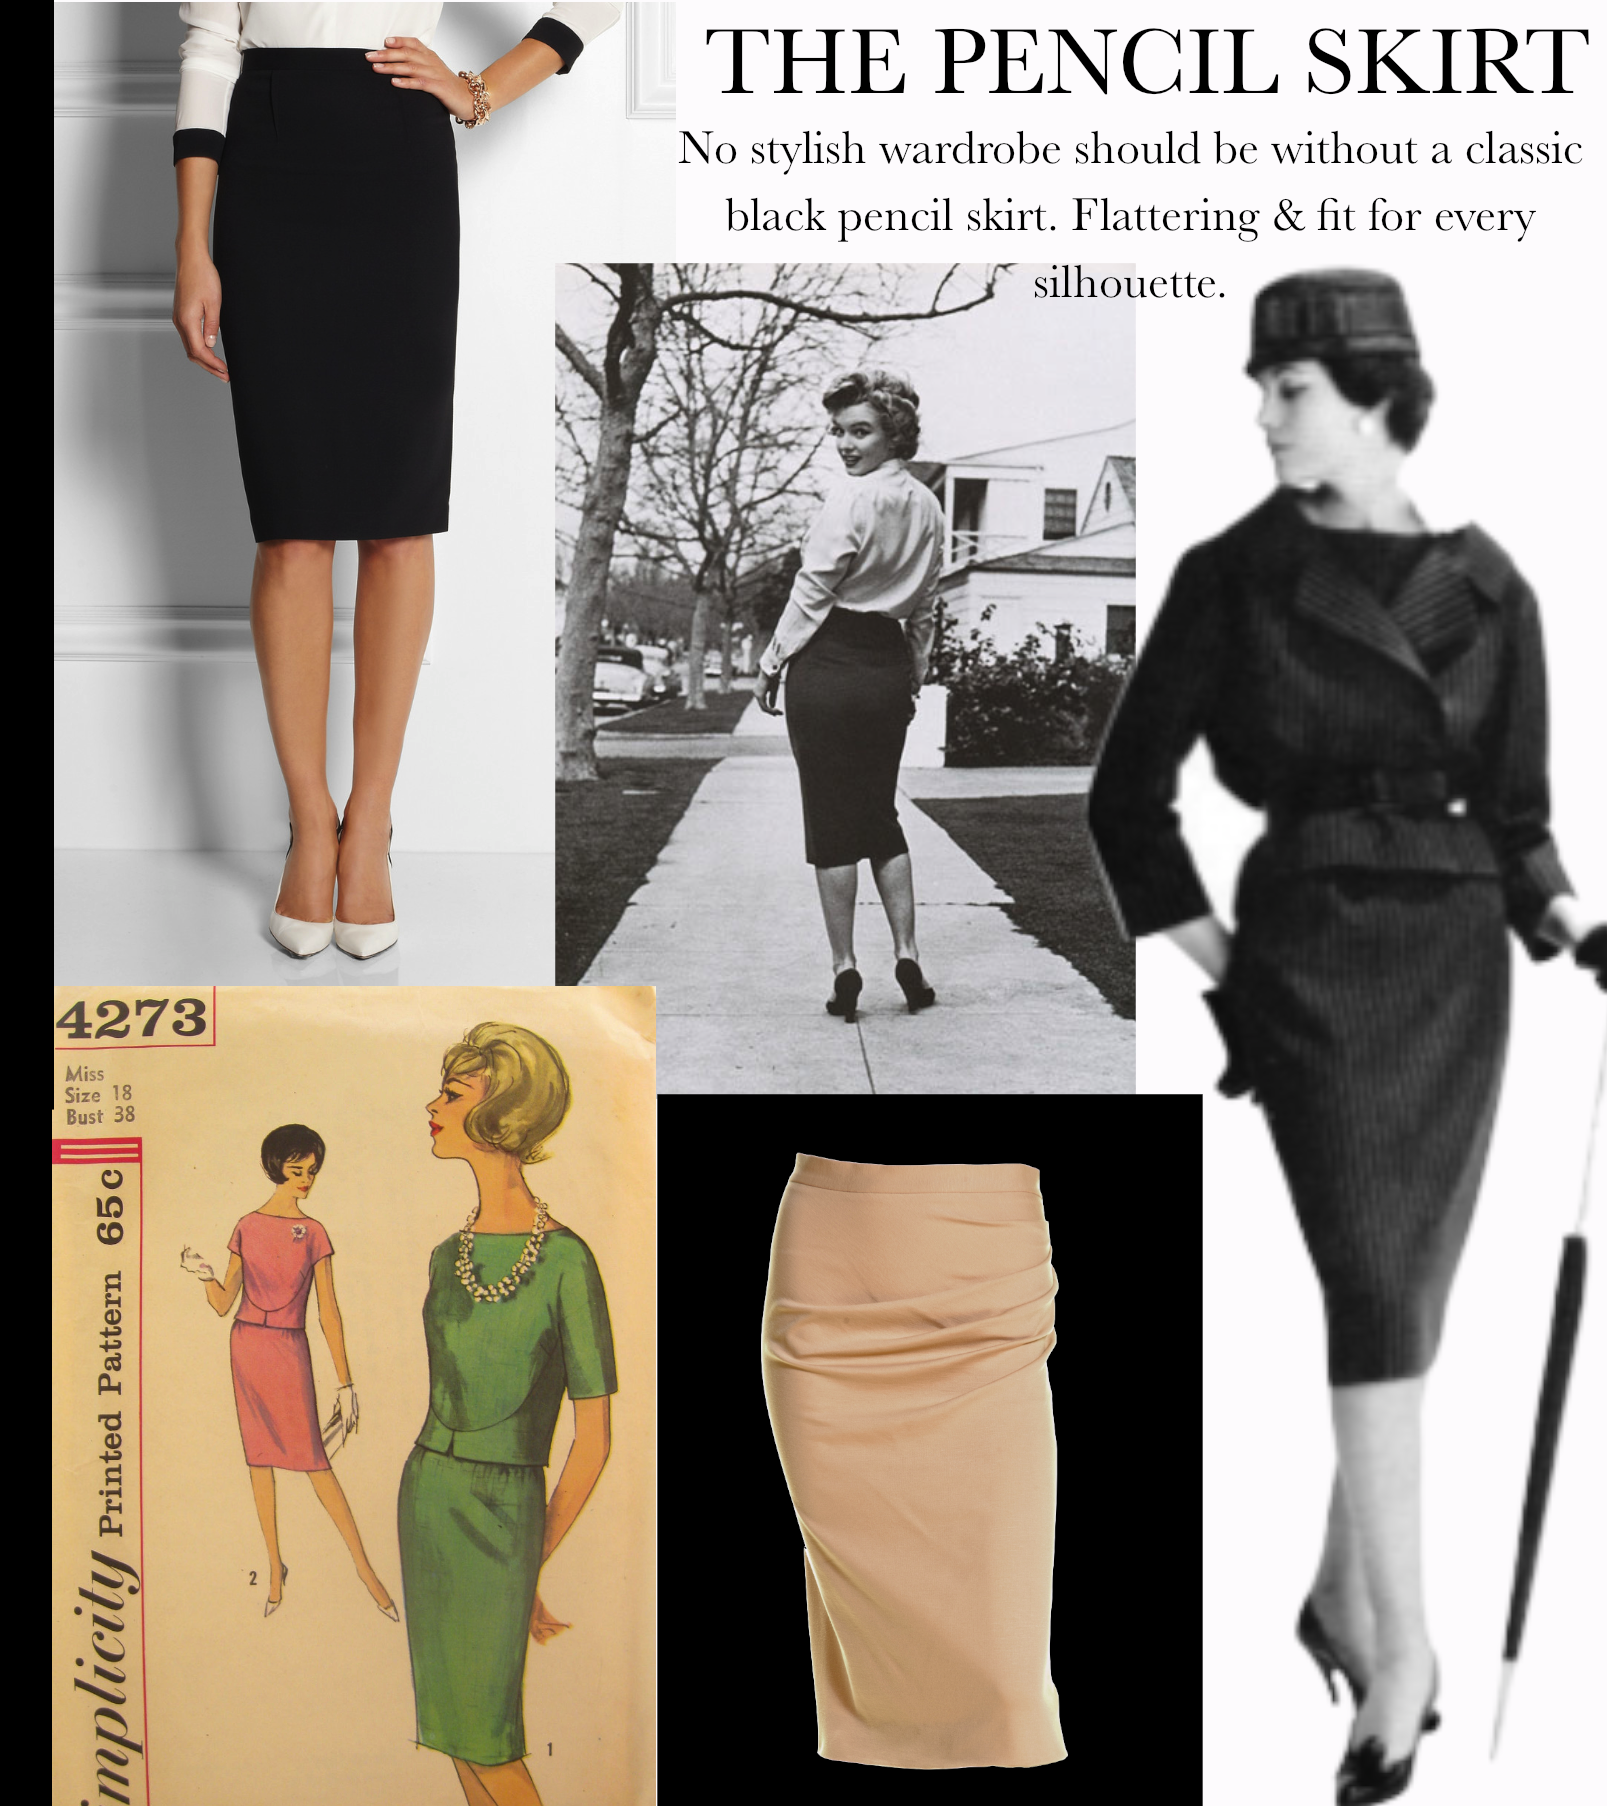 873687858d In 1940, Christian Dior created the first pencil skirt. Women immediately  embraced the curvy shape of the classic pencil skirt. The earliest pencil  skirts ...